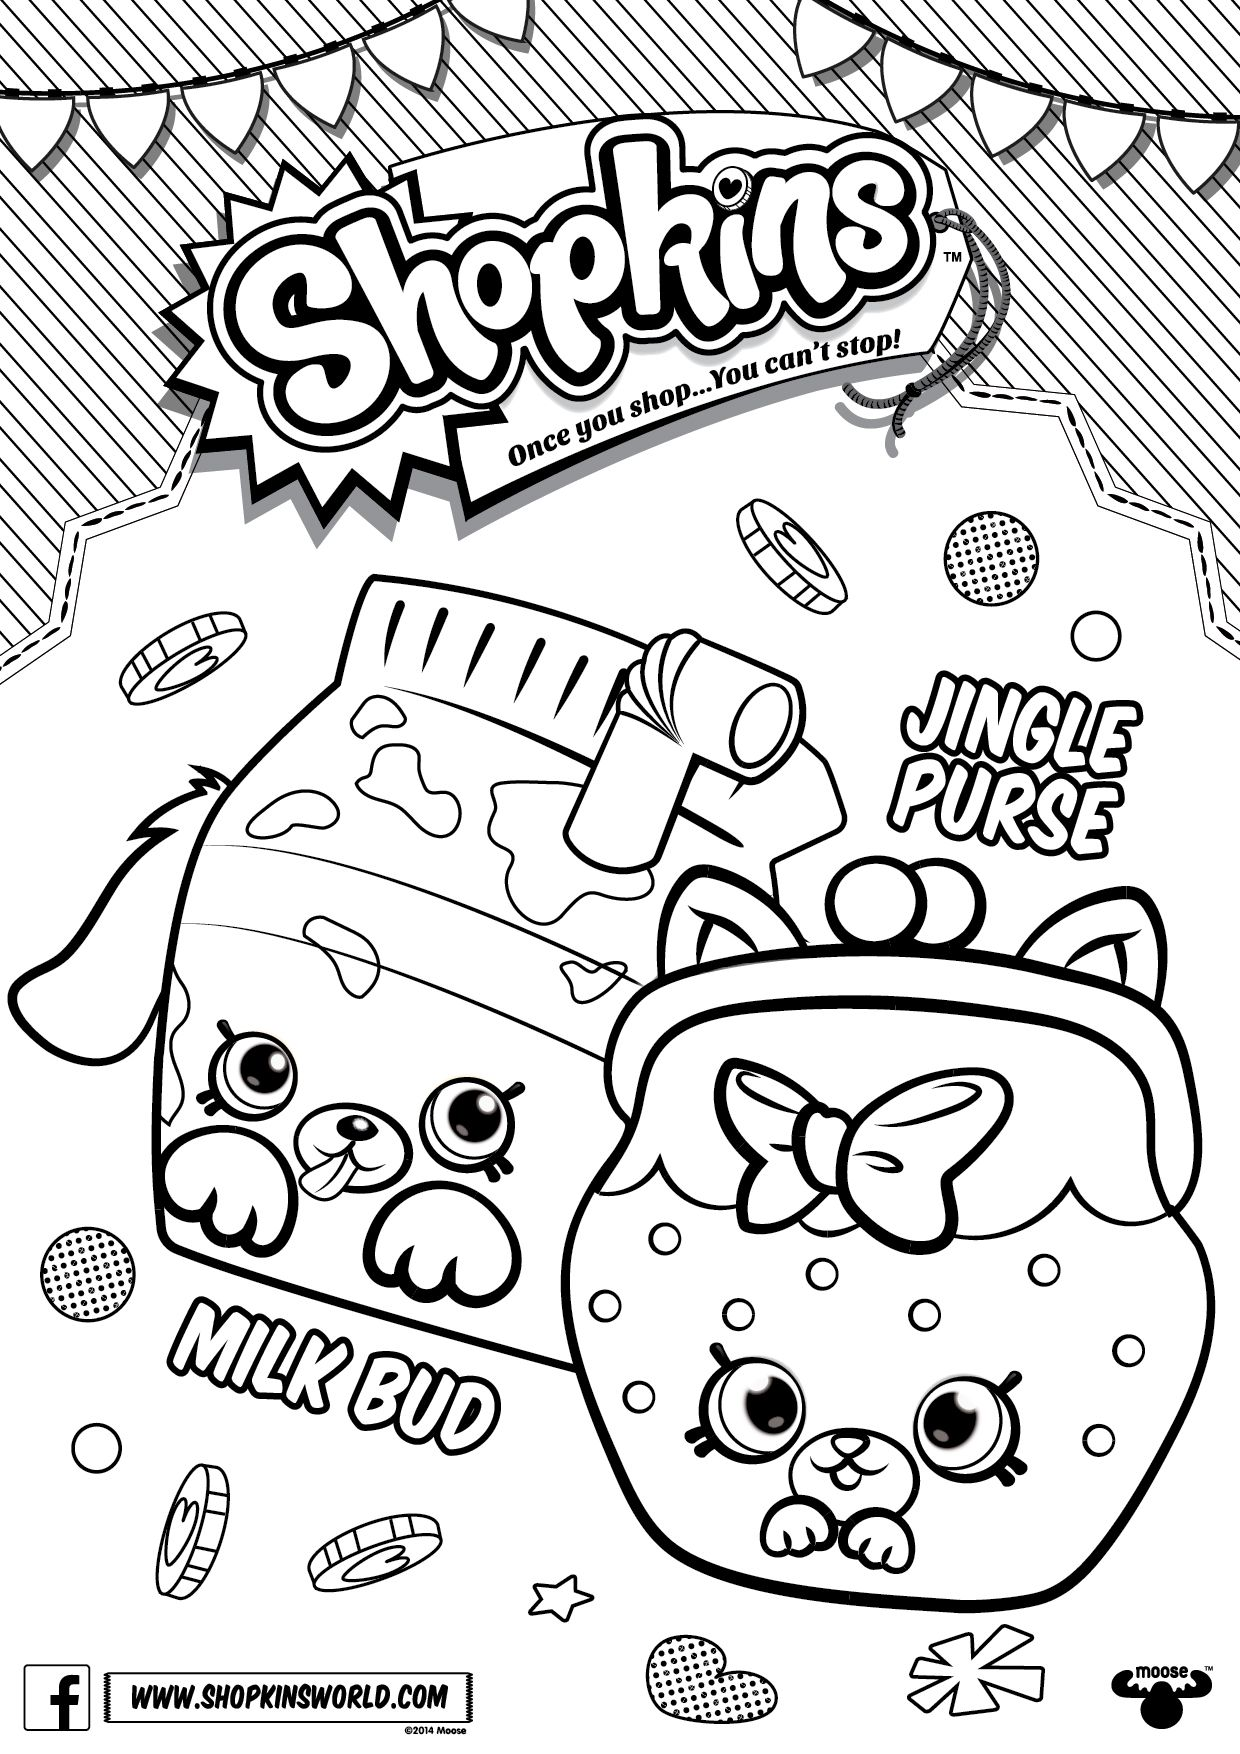 Shopkins coloring pages polly polish - Shopkins Coloring Pages Season 4 Petkins Jingle Purse Milk Bud Made By A Princess